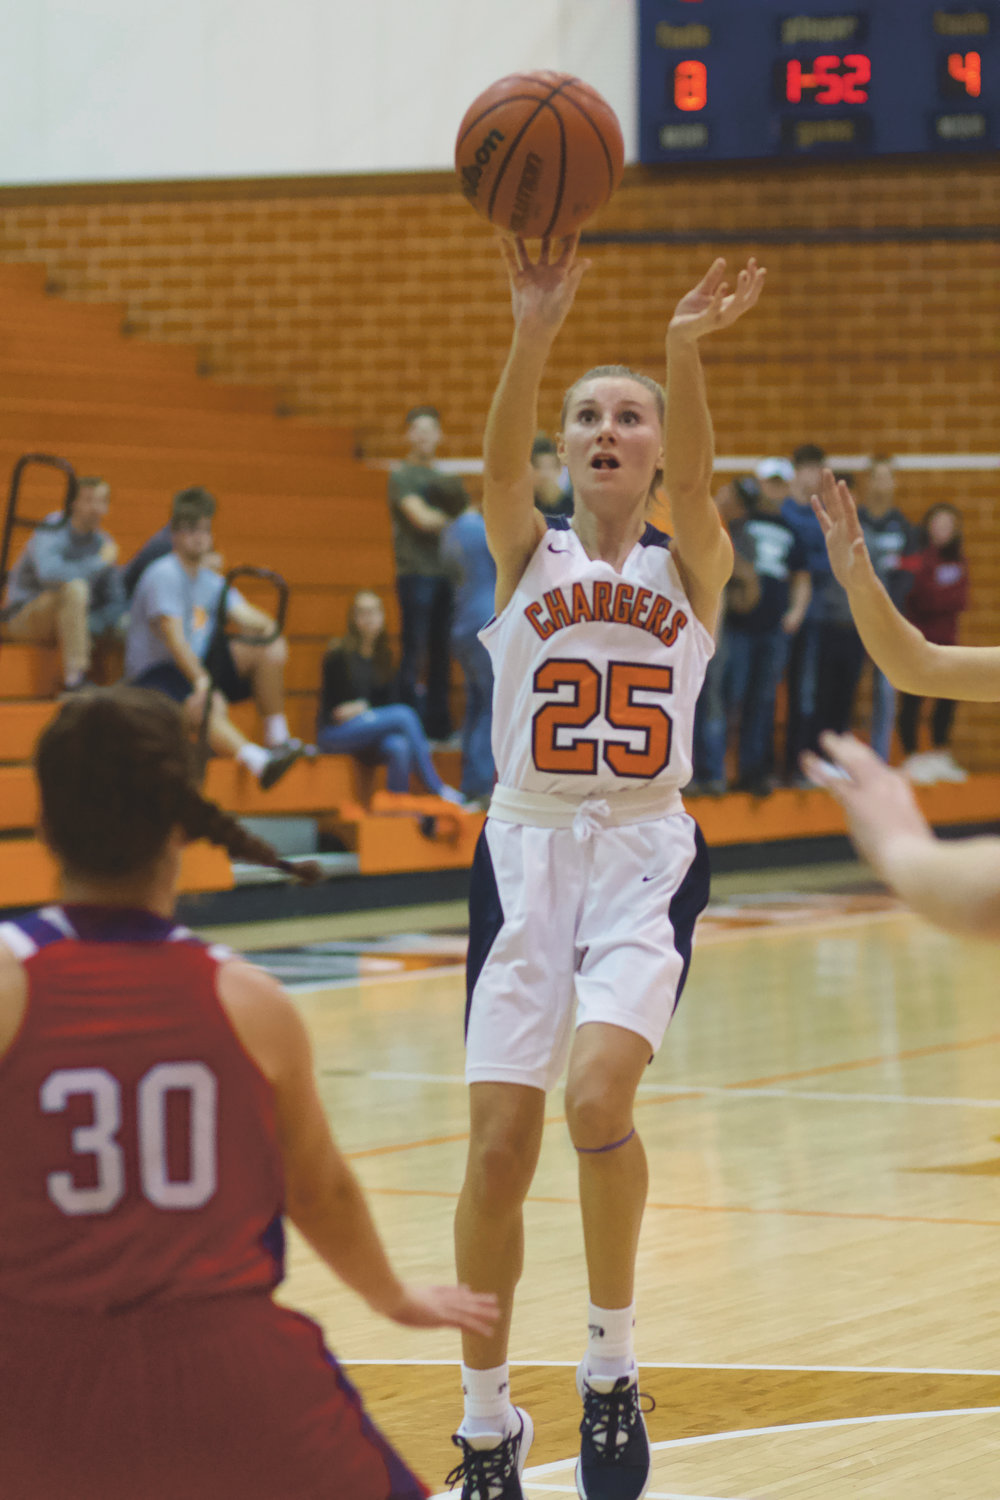 North Montgomery's Grace McClaskey fires up a shot in the Chargers' loss to Western Boone.